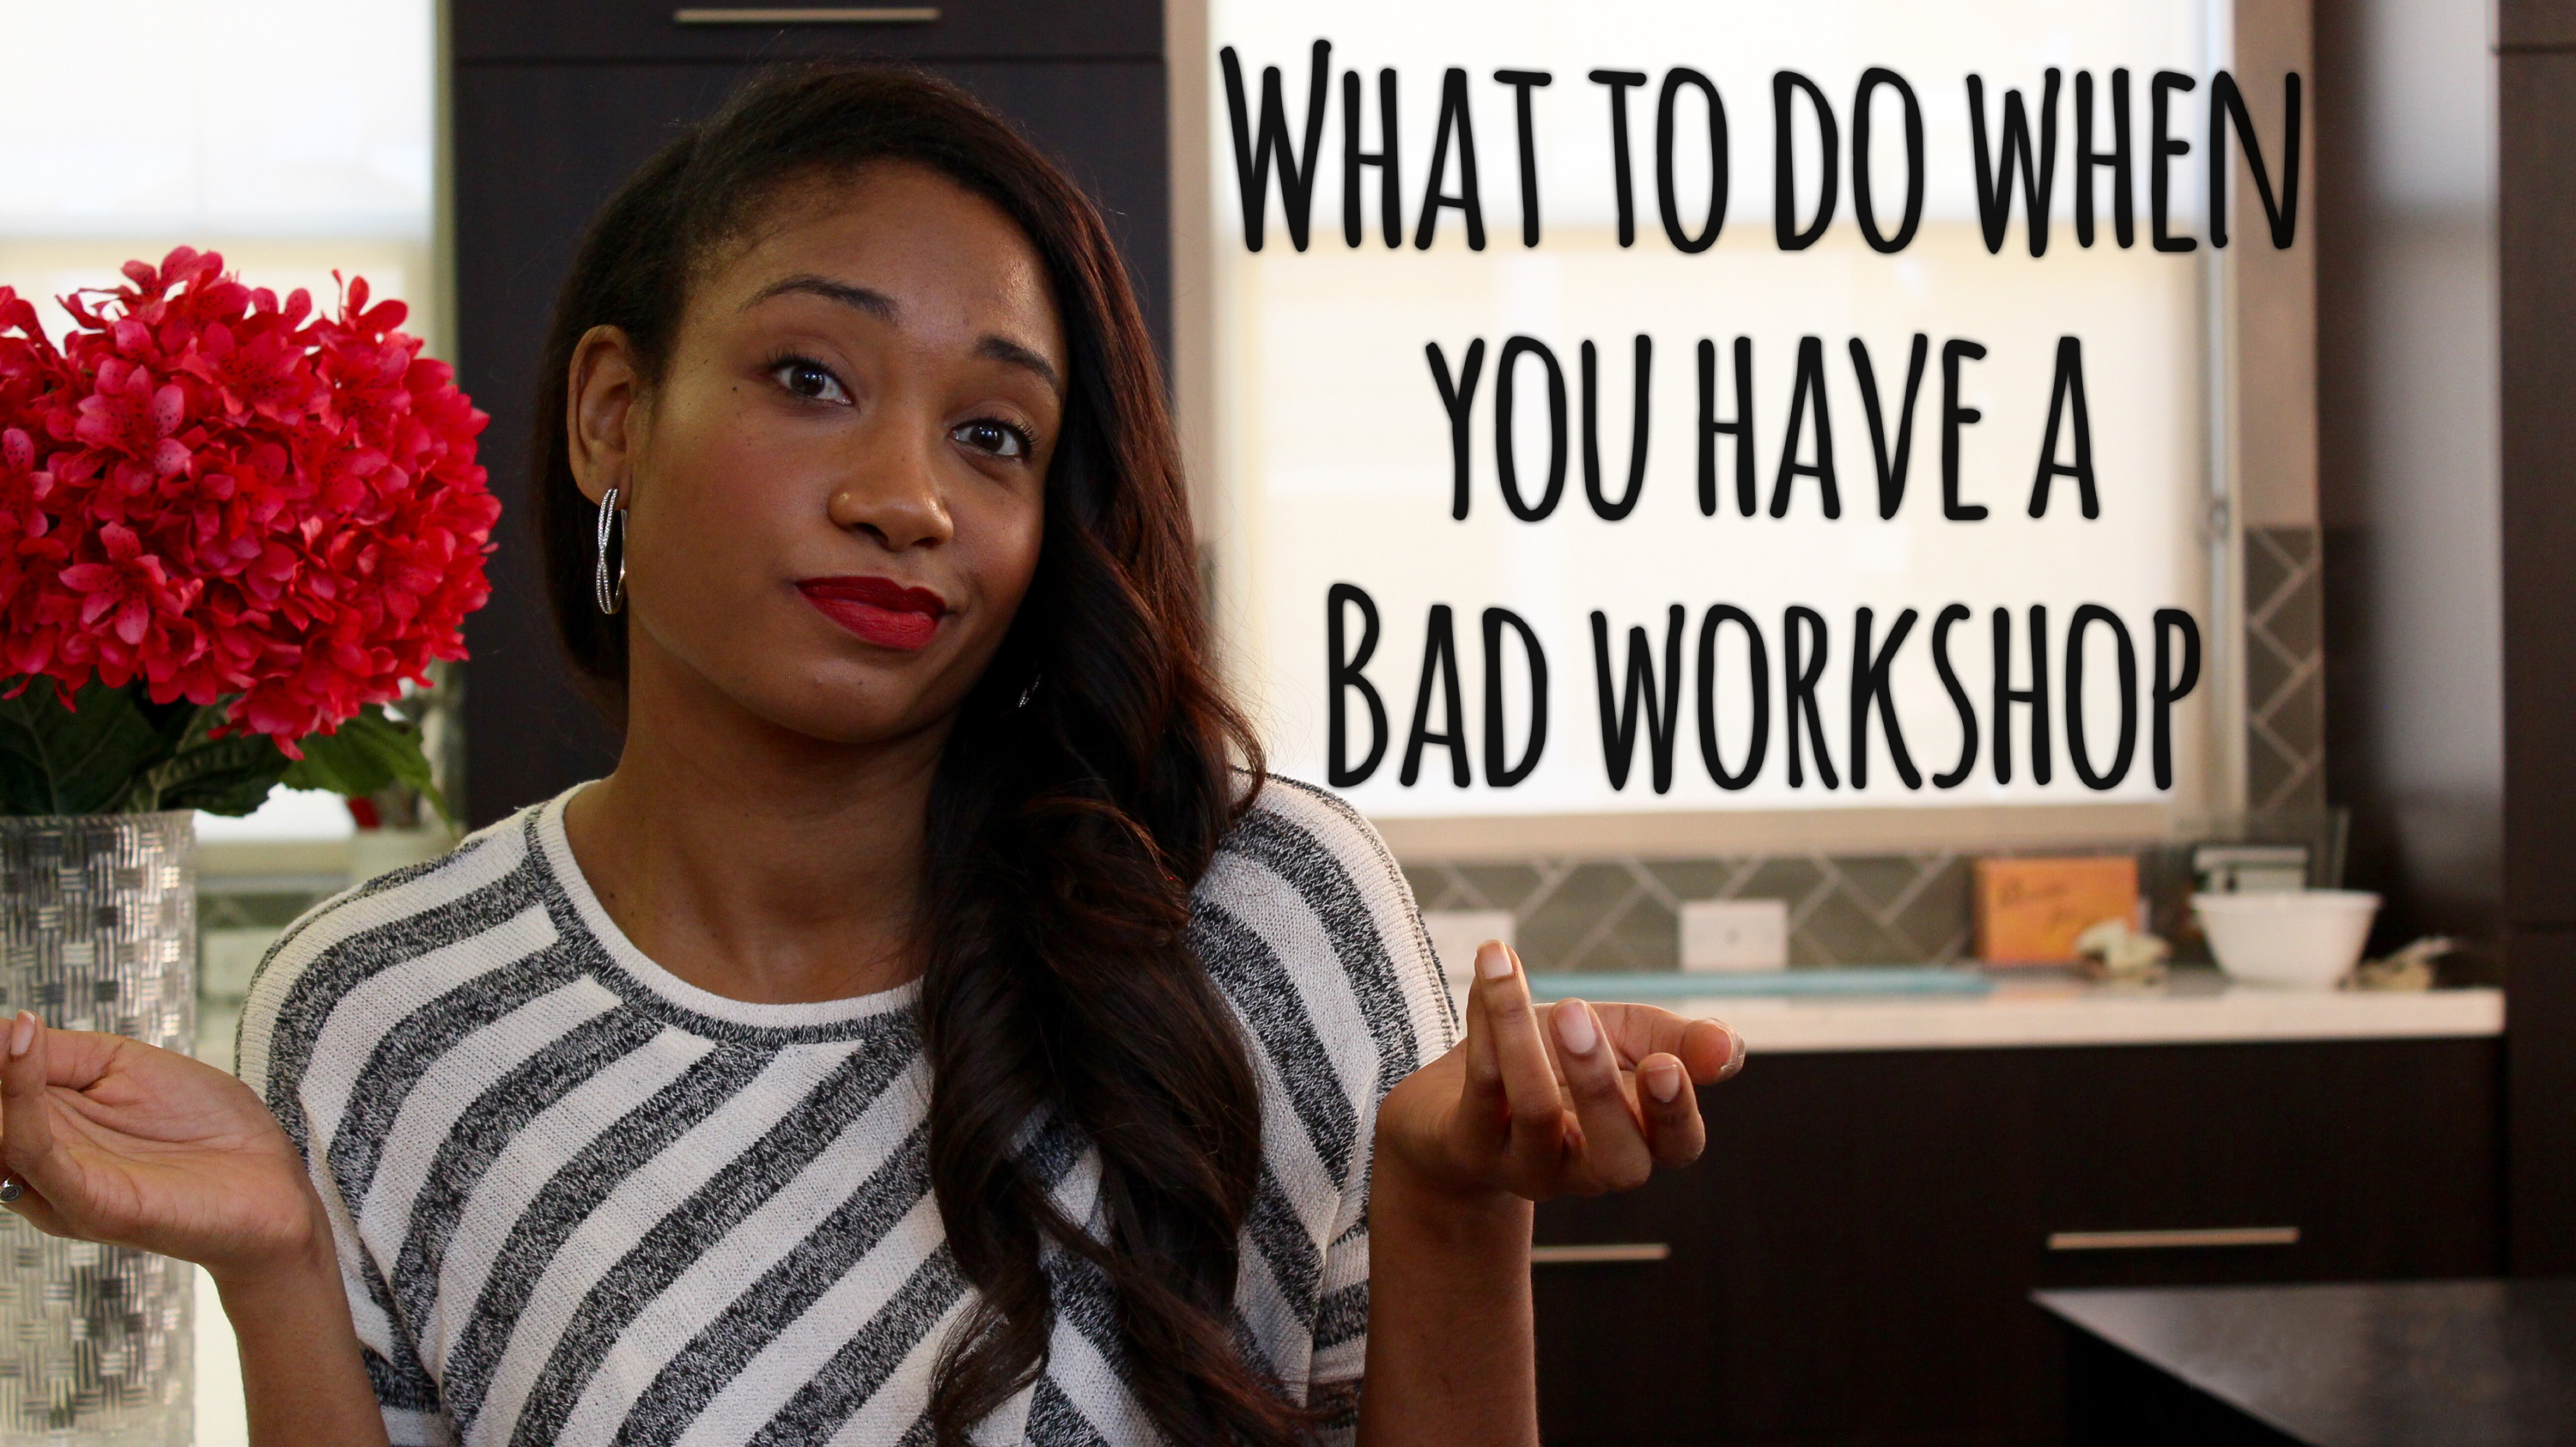 What To Do When You Have A Bad Workshop | The Workshop Guru